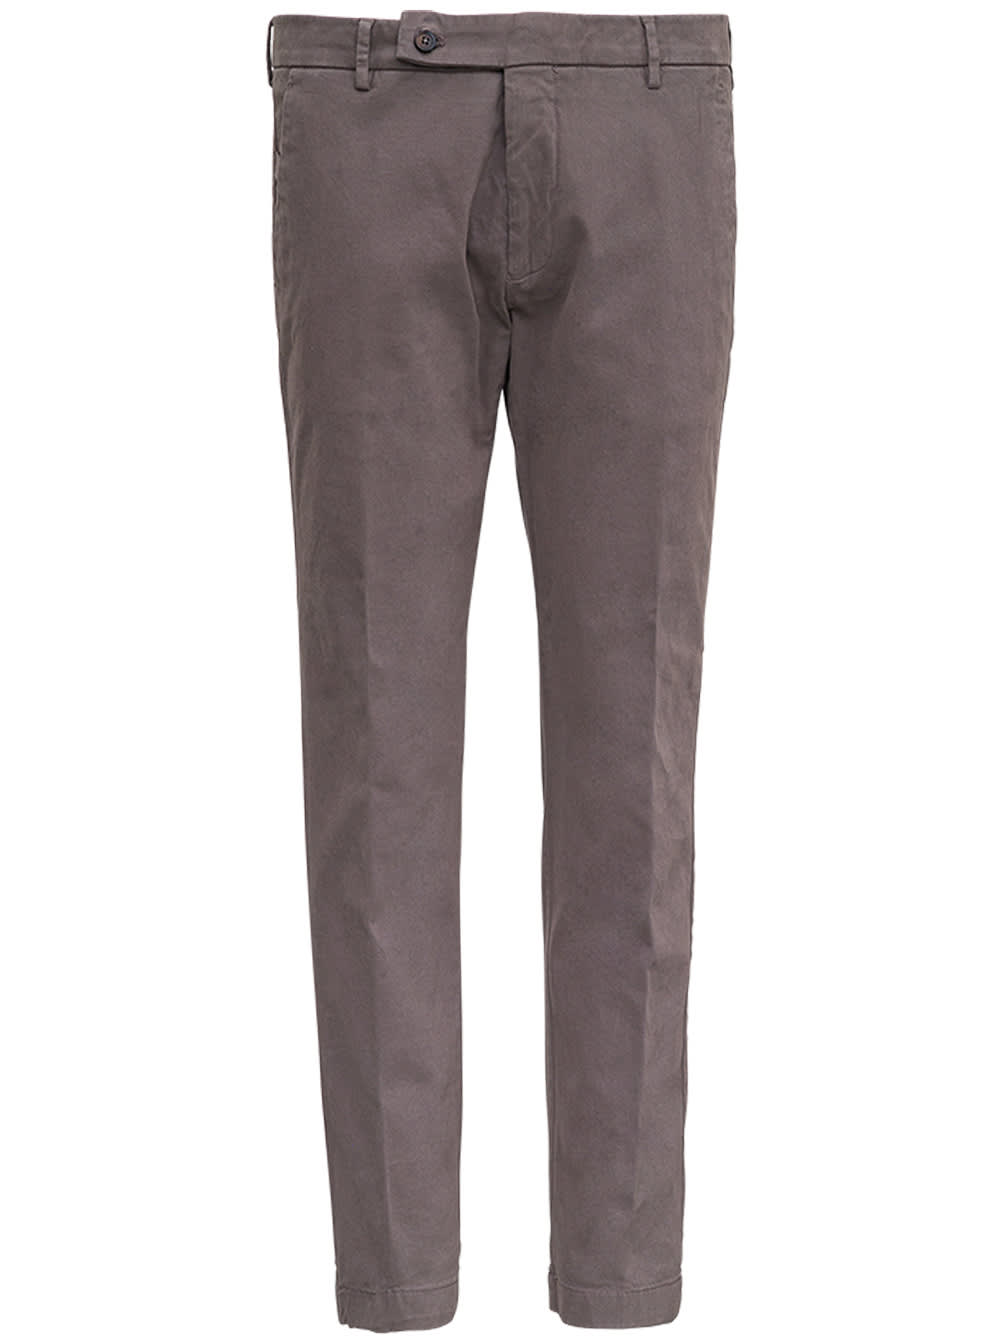 Grey Cotton Tailored Pants